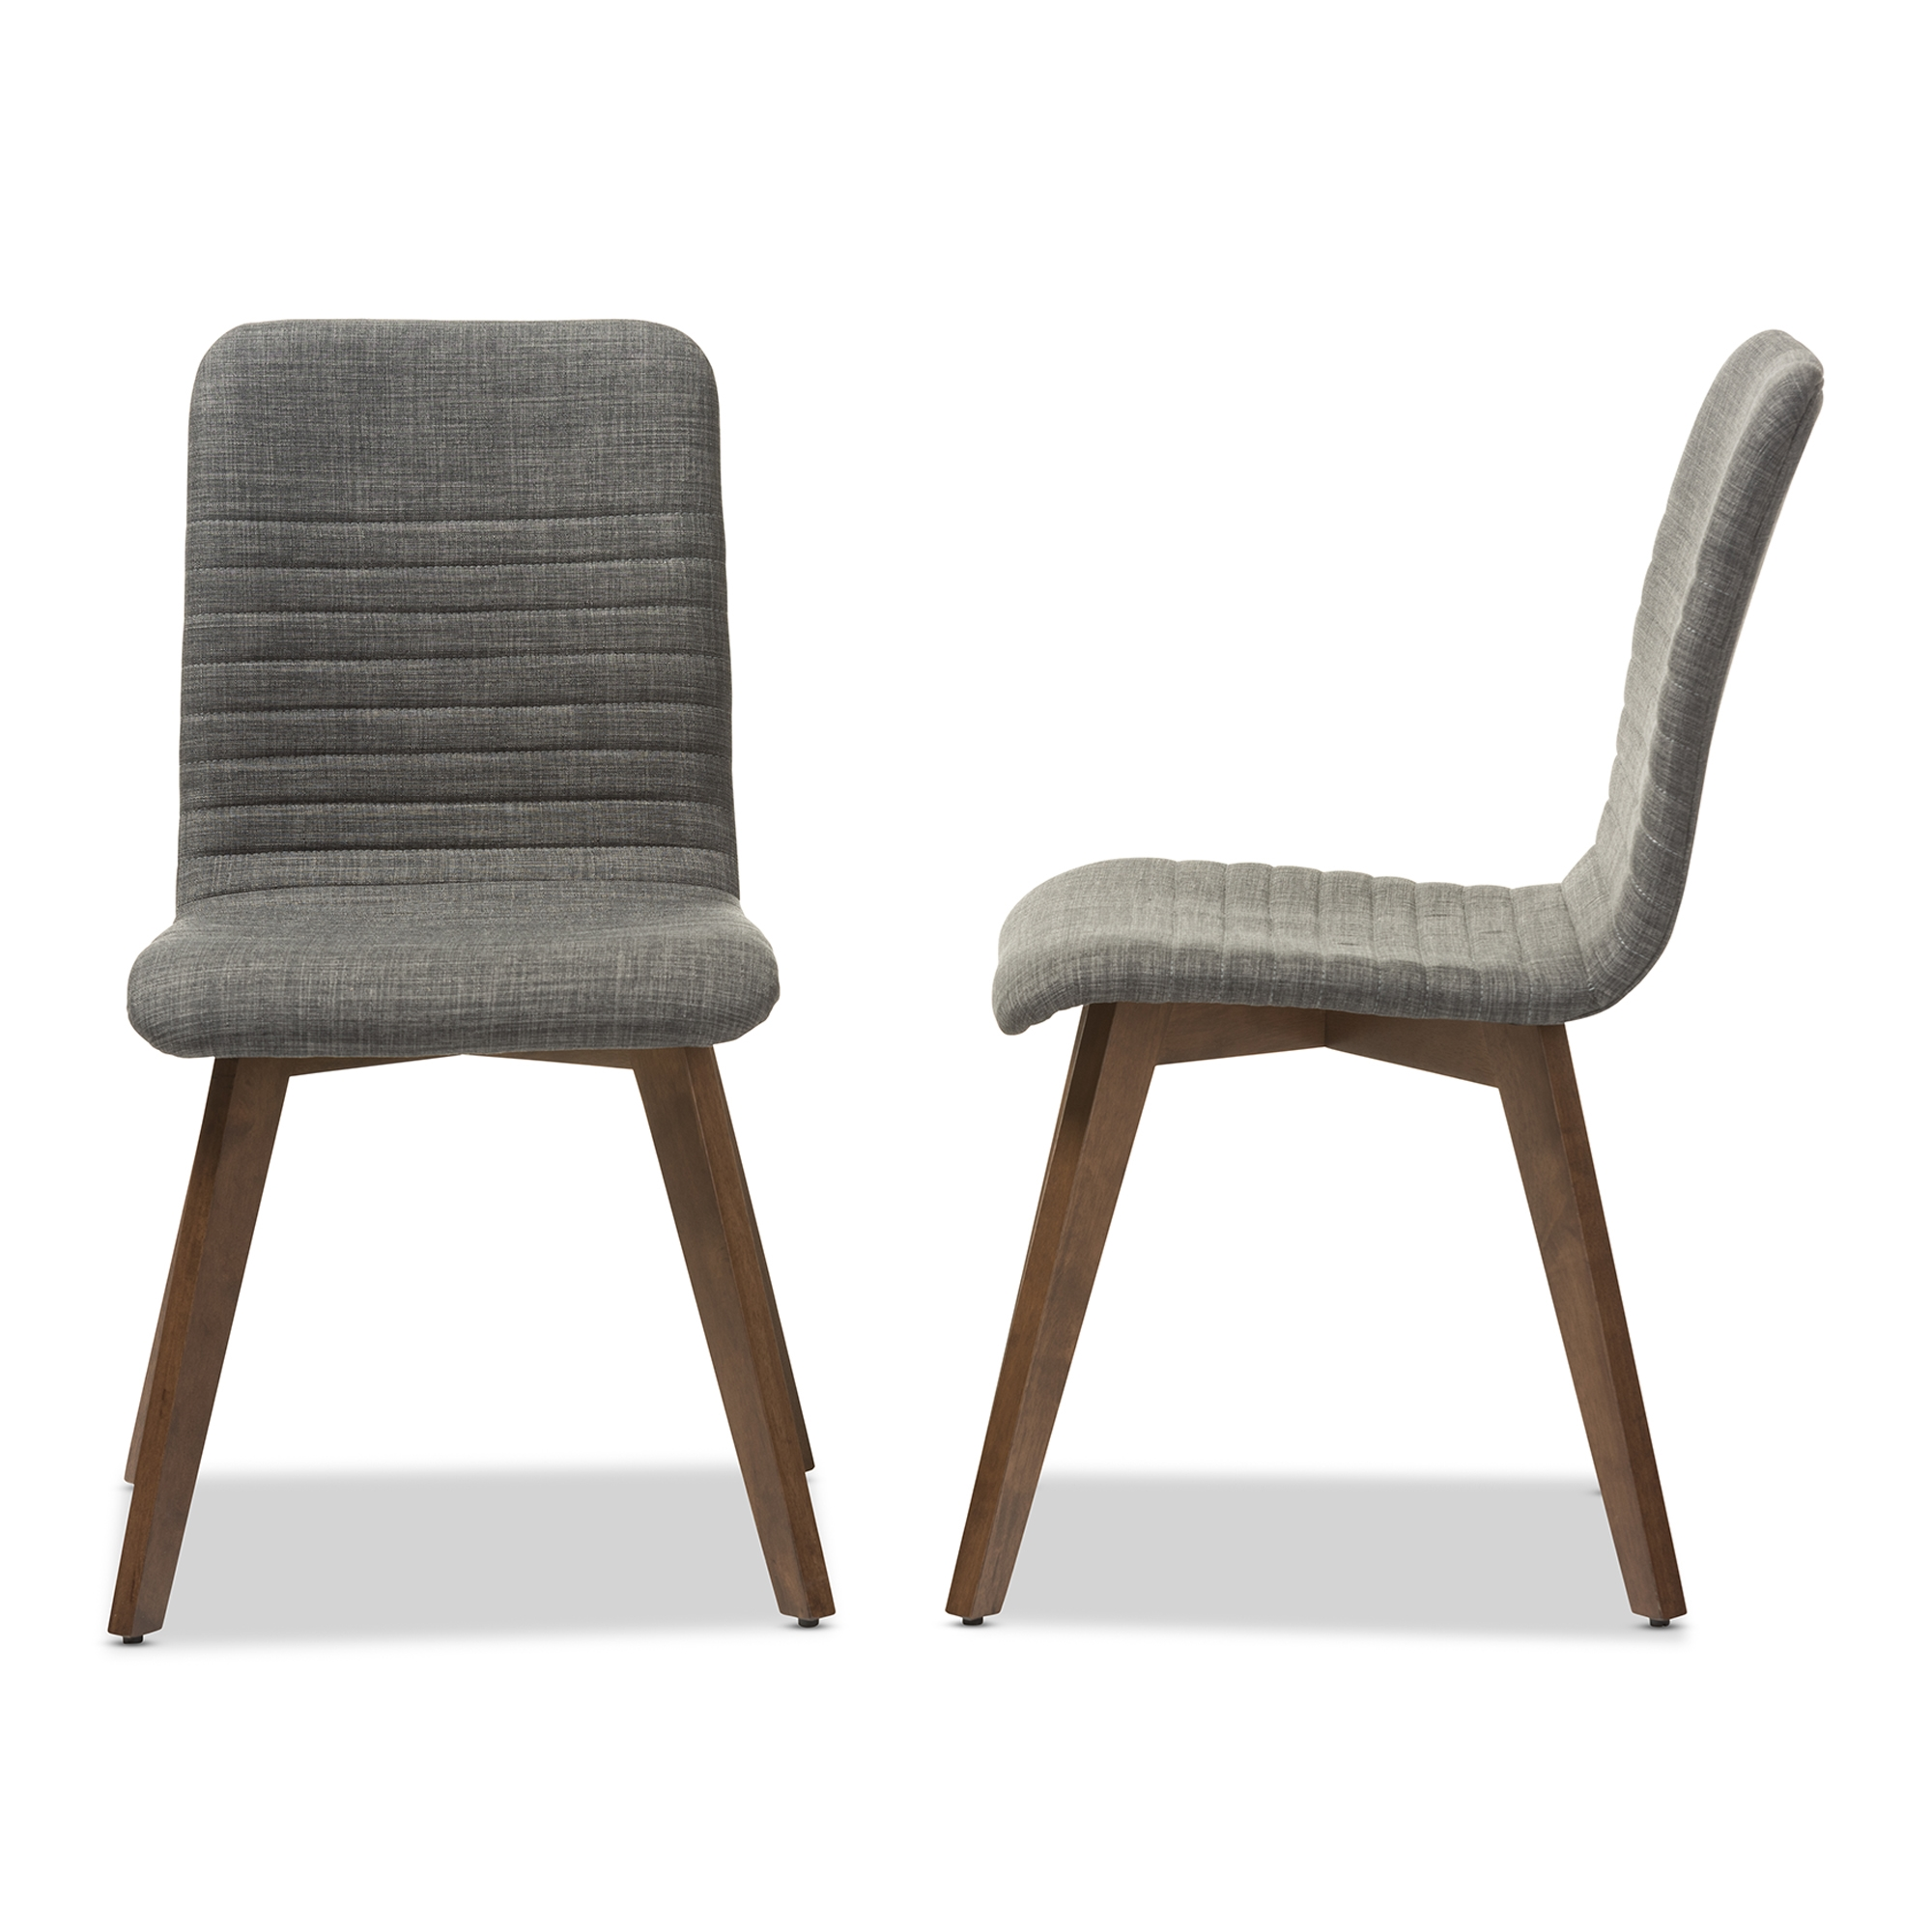 Retro modern furniture 60 Retro Baxton Studio Sugar Midcentury Retro Modern Scandinavian Style Dark Grey Fabric Upholstered Walnut Wood Treehugger Wholesale Dining Chairs Wholesale Dining Room Furniture